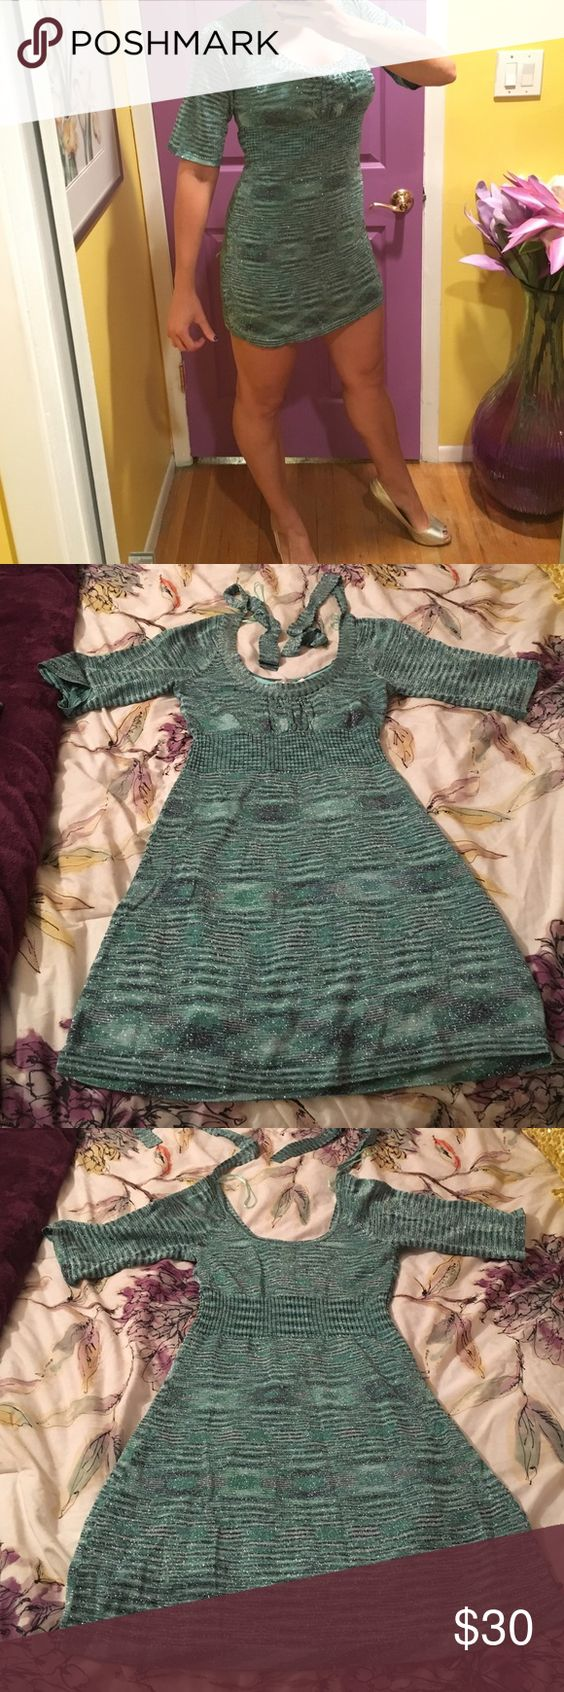 Guess Dress Guess Jeans Brand knit dress. Great for the holidays. Beautiful Mint green color. As seen on the bachelor (Jake Pavelka's season, Vienna wore it!) I had it first though! LOL. Great Condition. Worn handful of times. Tight fitting but stretchy material. Ties around the neck in back and is a pull over dress. Guess Jeans Dresses Mini